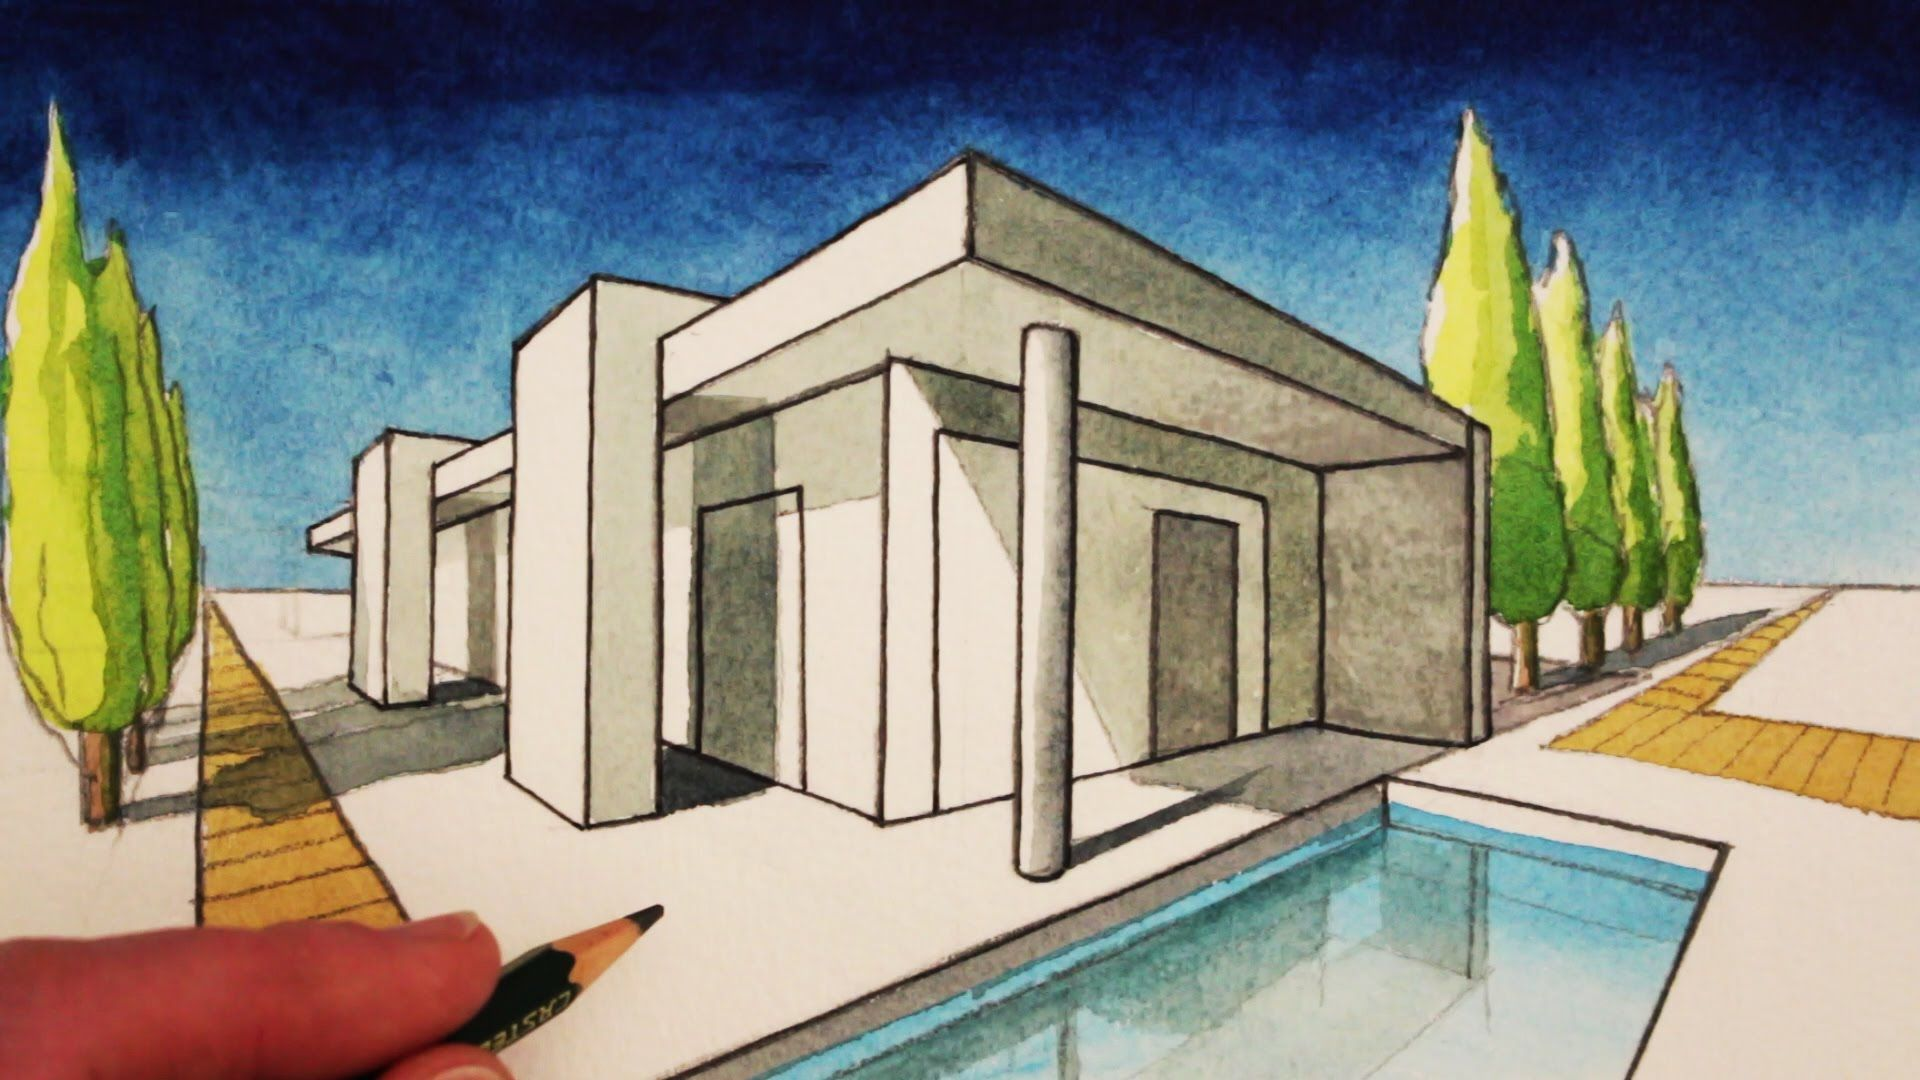 ... Art Tutorial On How To Draw Using Two Point Perspective, Draw A Modern  House. SUBSCRIBE For A New Art Tutorial Every Week: Http://www.youtube.com/ Us.